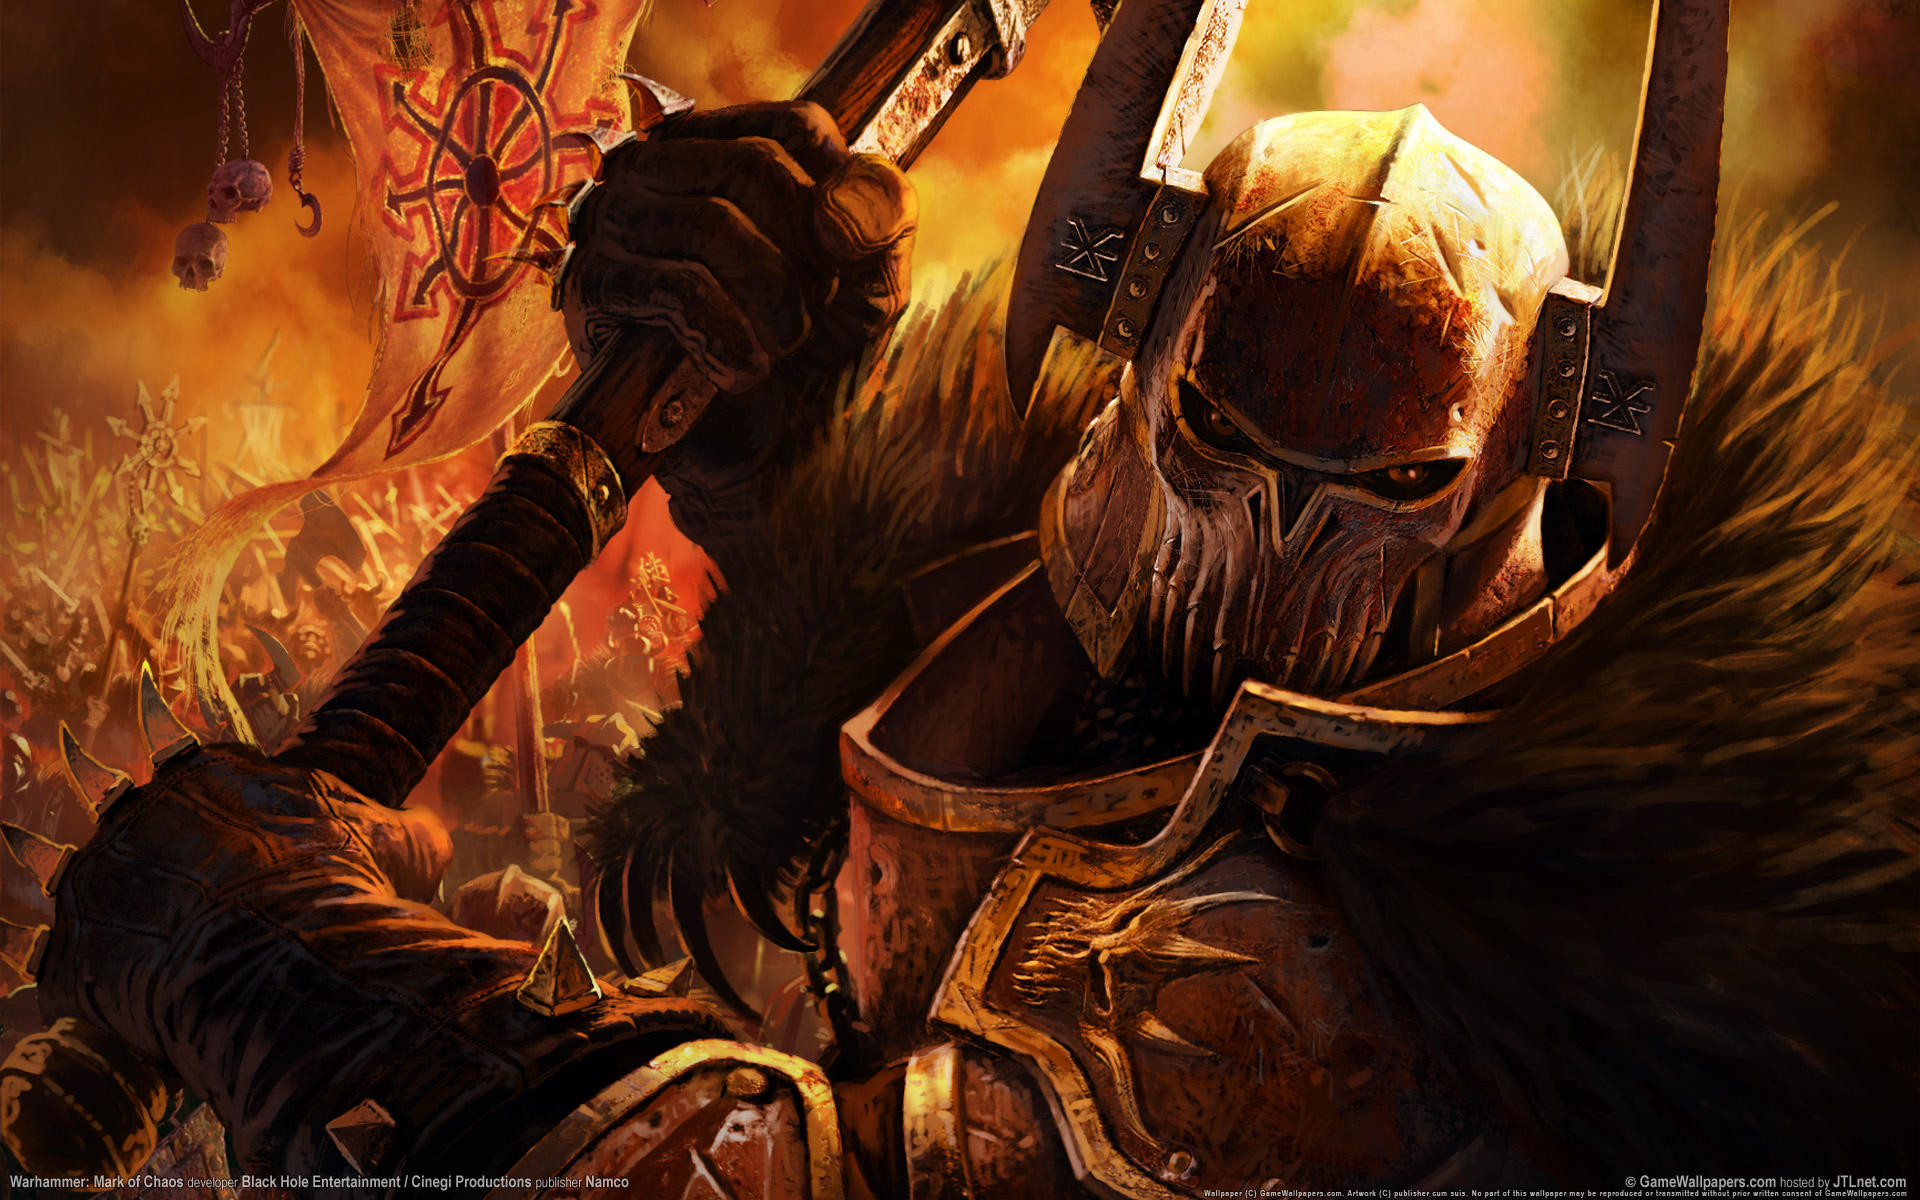 Free Warhammer mark of chaos Wallpapers, Warhammer mark of chaos Pictures,  Warhammer mark of chaos Photos, Warhammer mark of chaos wallpaper